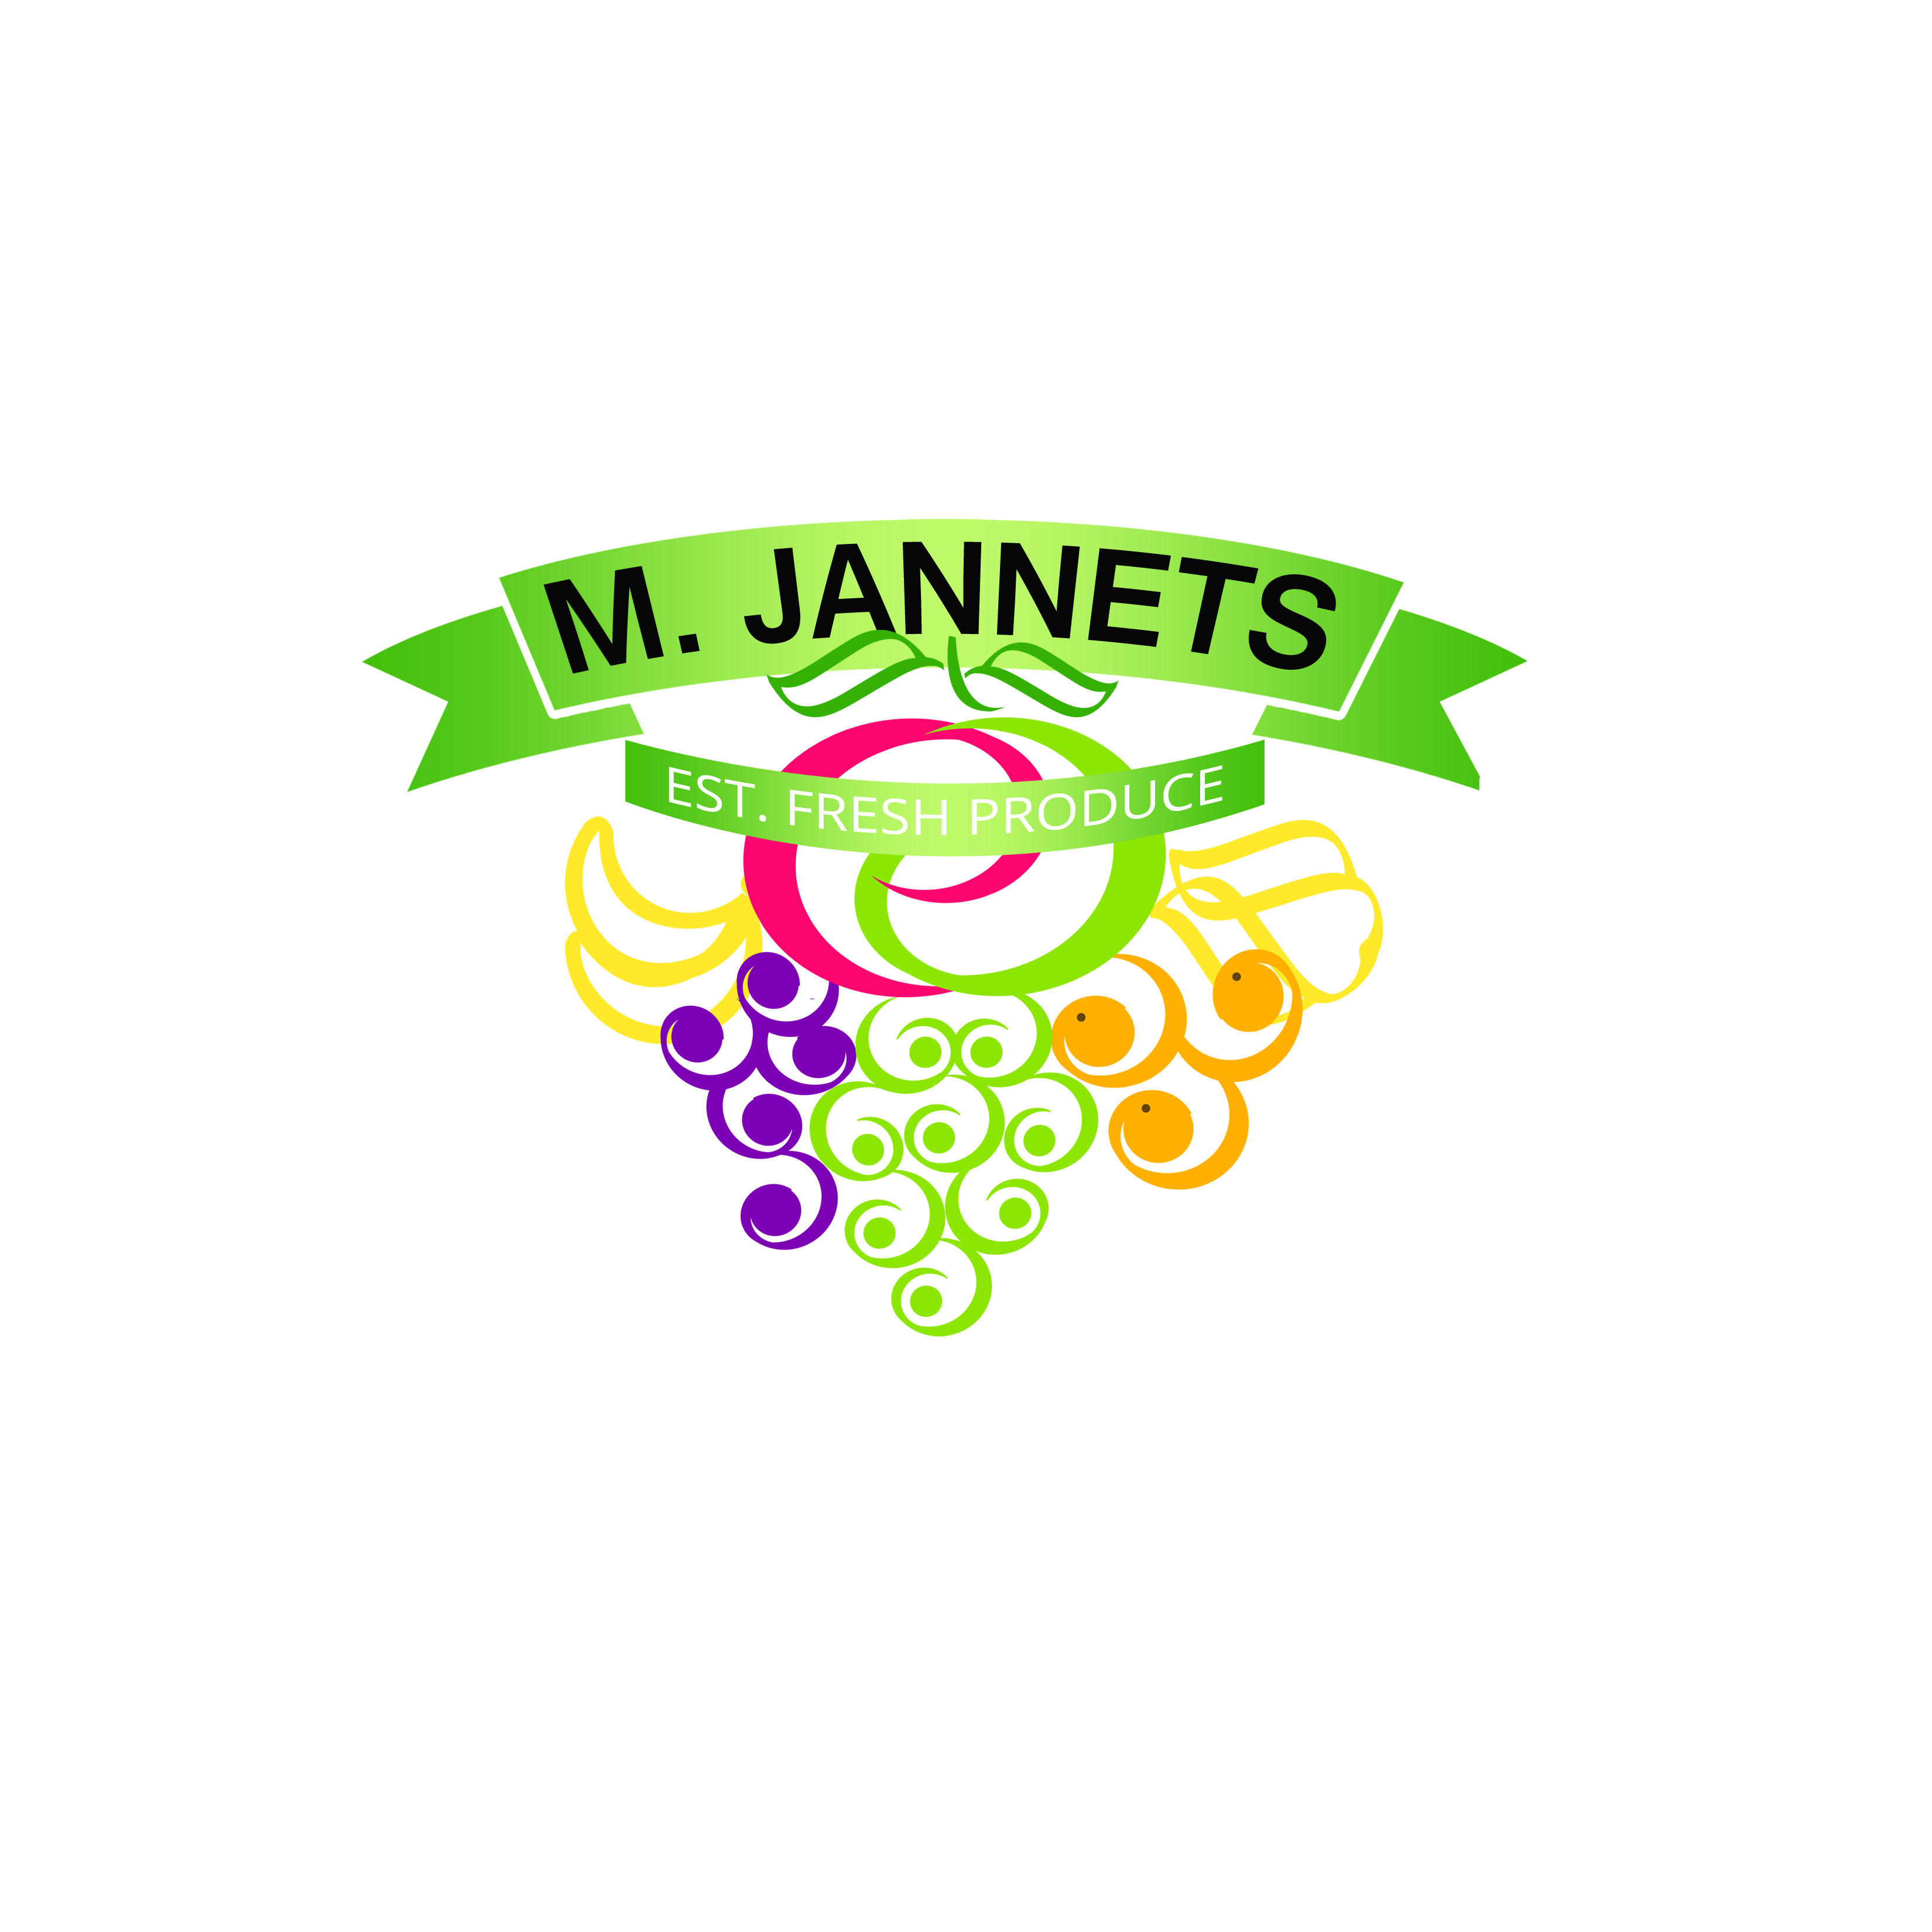 Logo Design by Allan Esclamado - Entry No. 48 in the Logo Design Contest Inspiring Logo Design for M. Jannets.